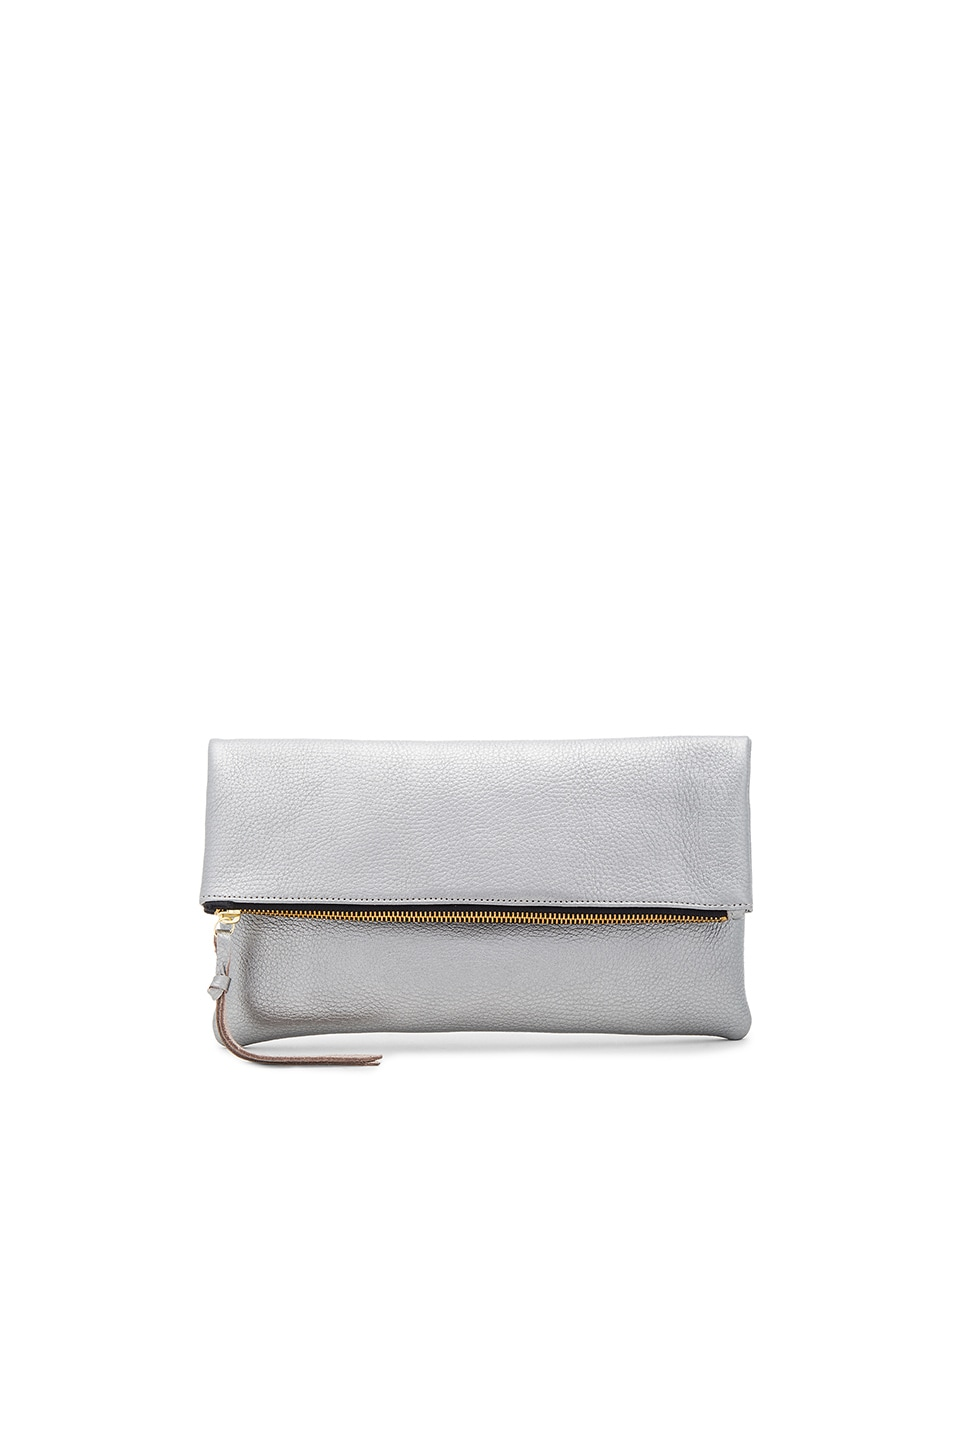 Oliveve Anastasia Clutch in Nickel